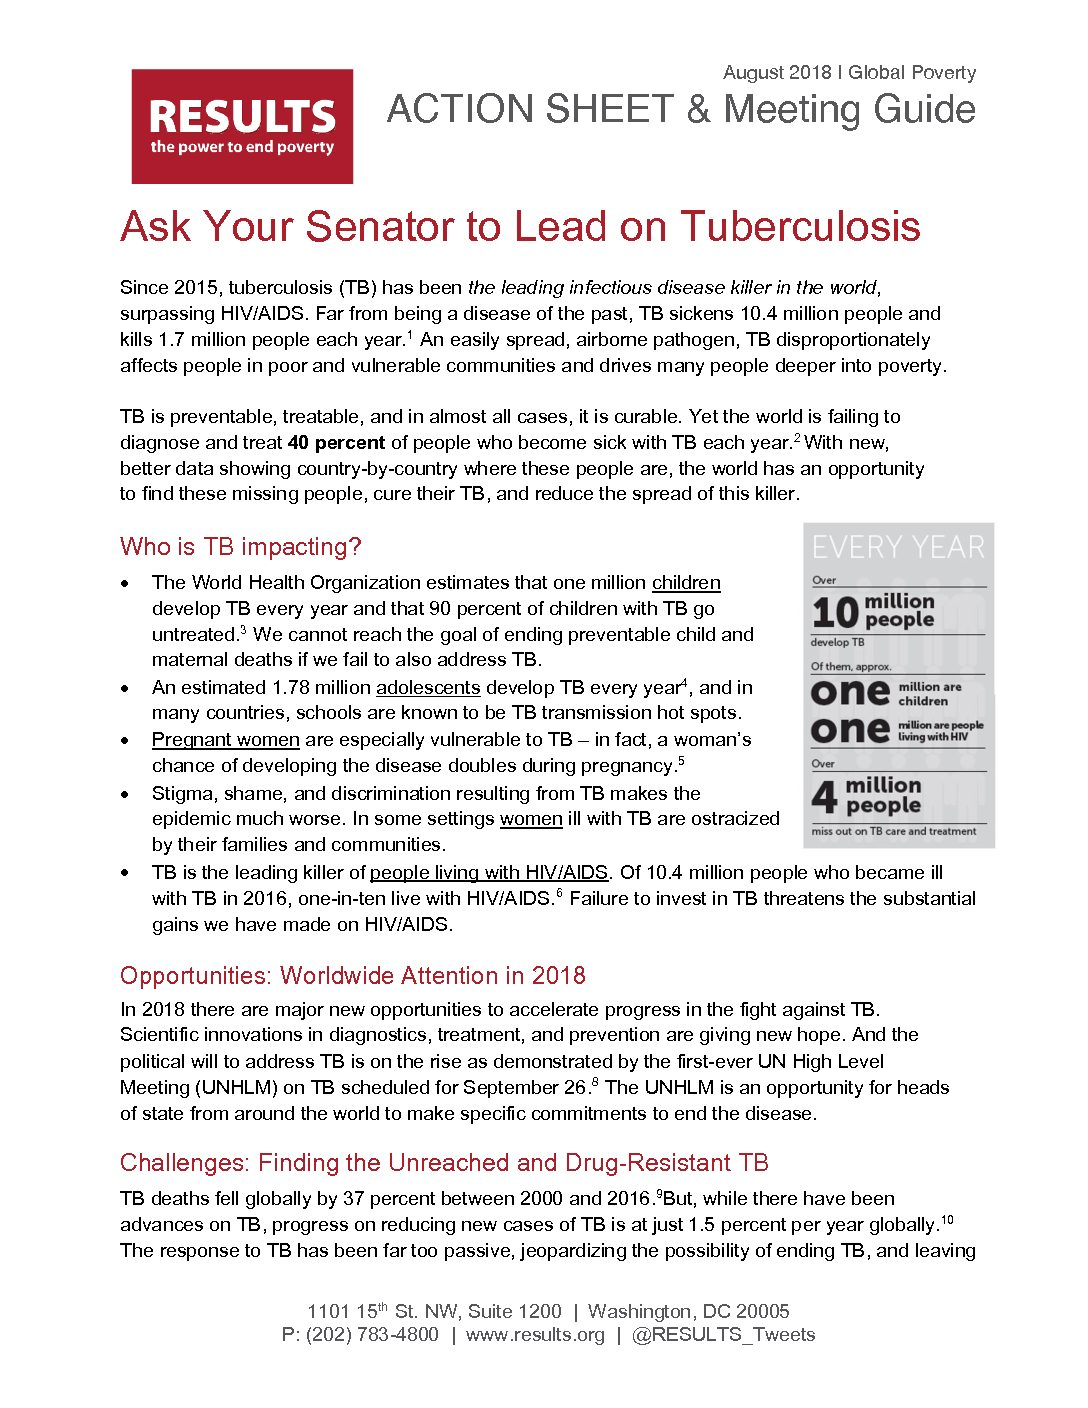 August 2018 Global Action Senate Letter On TB With Guide